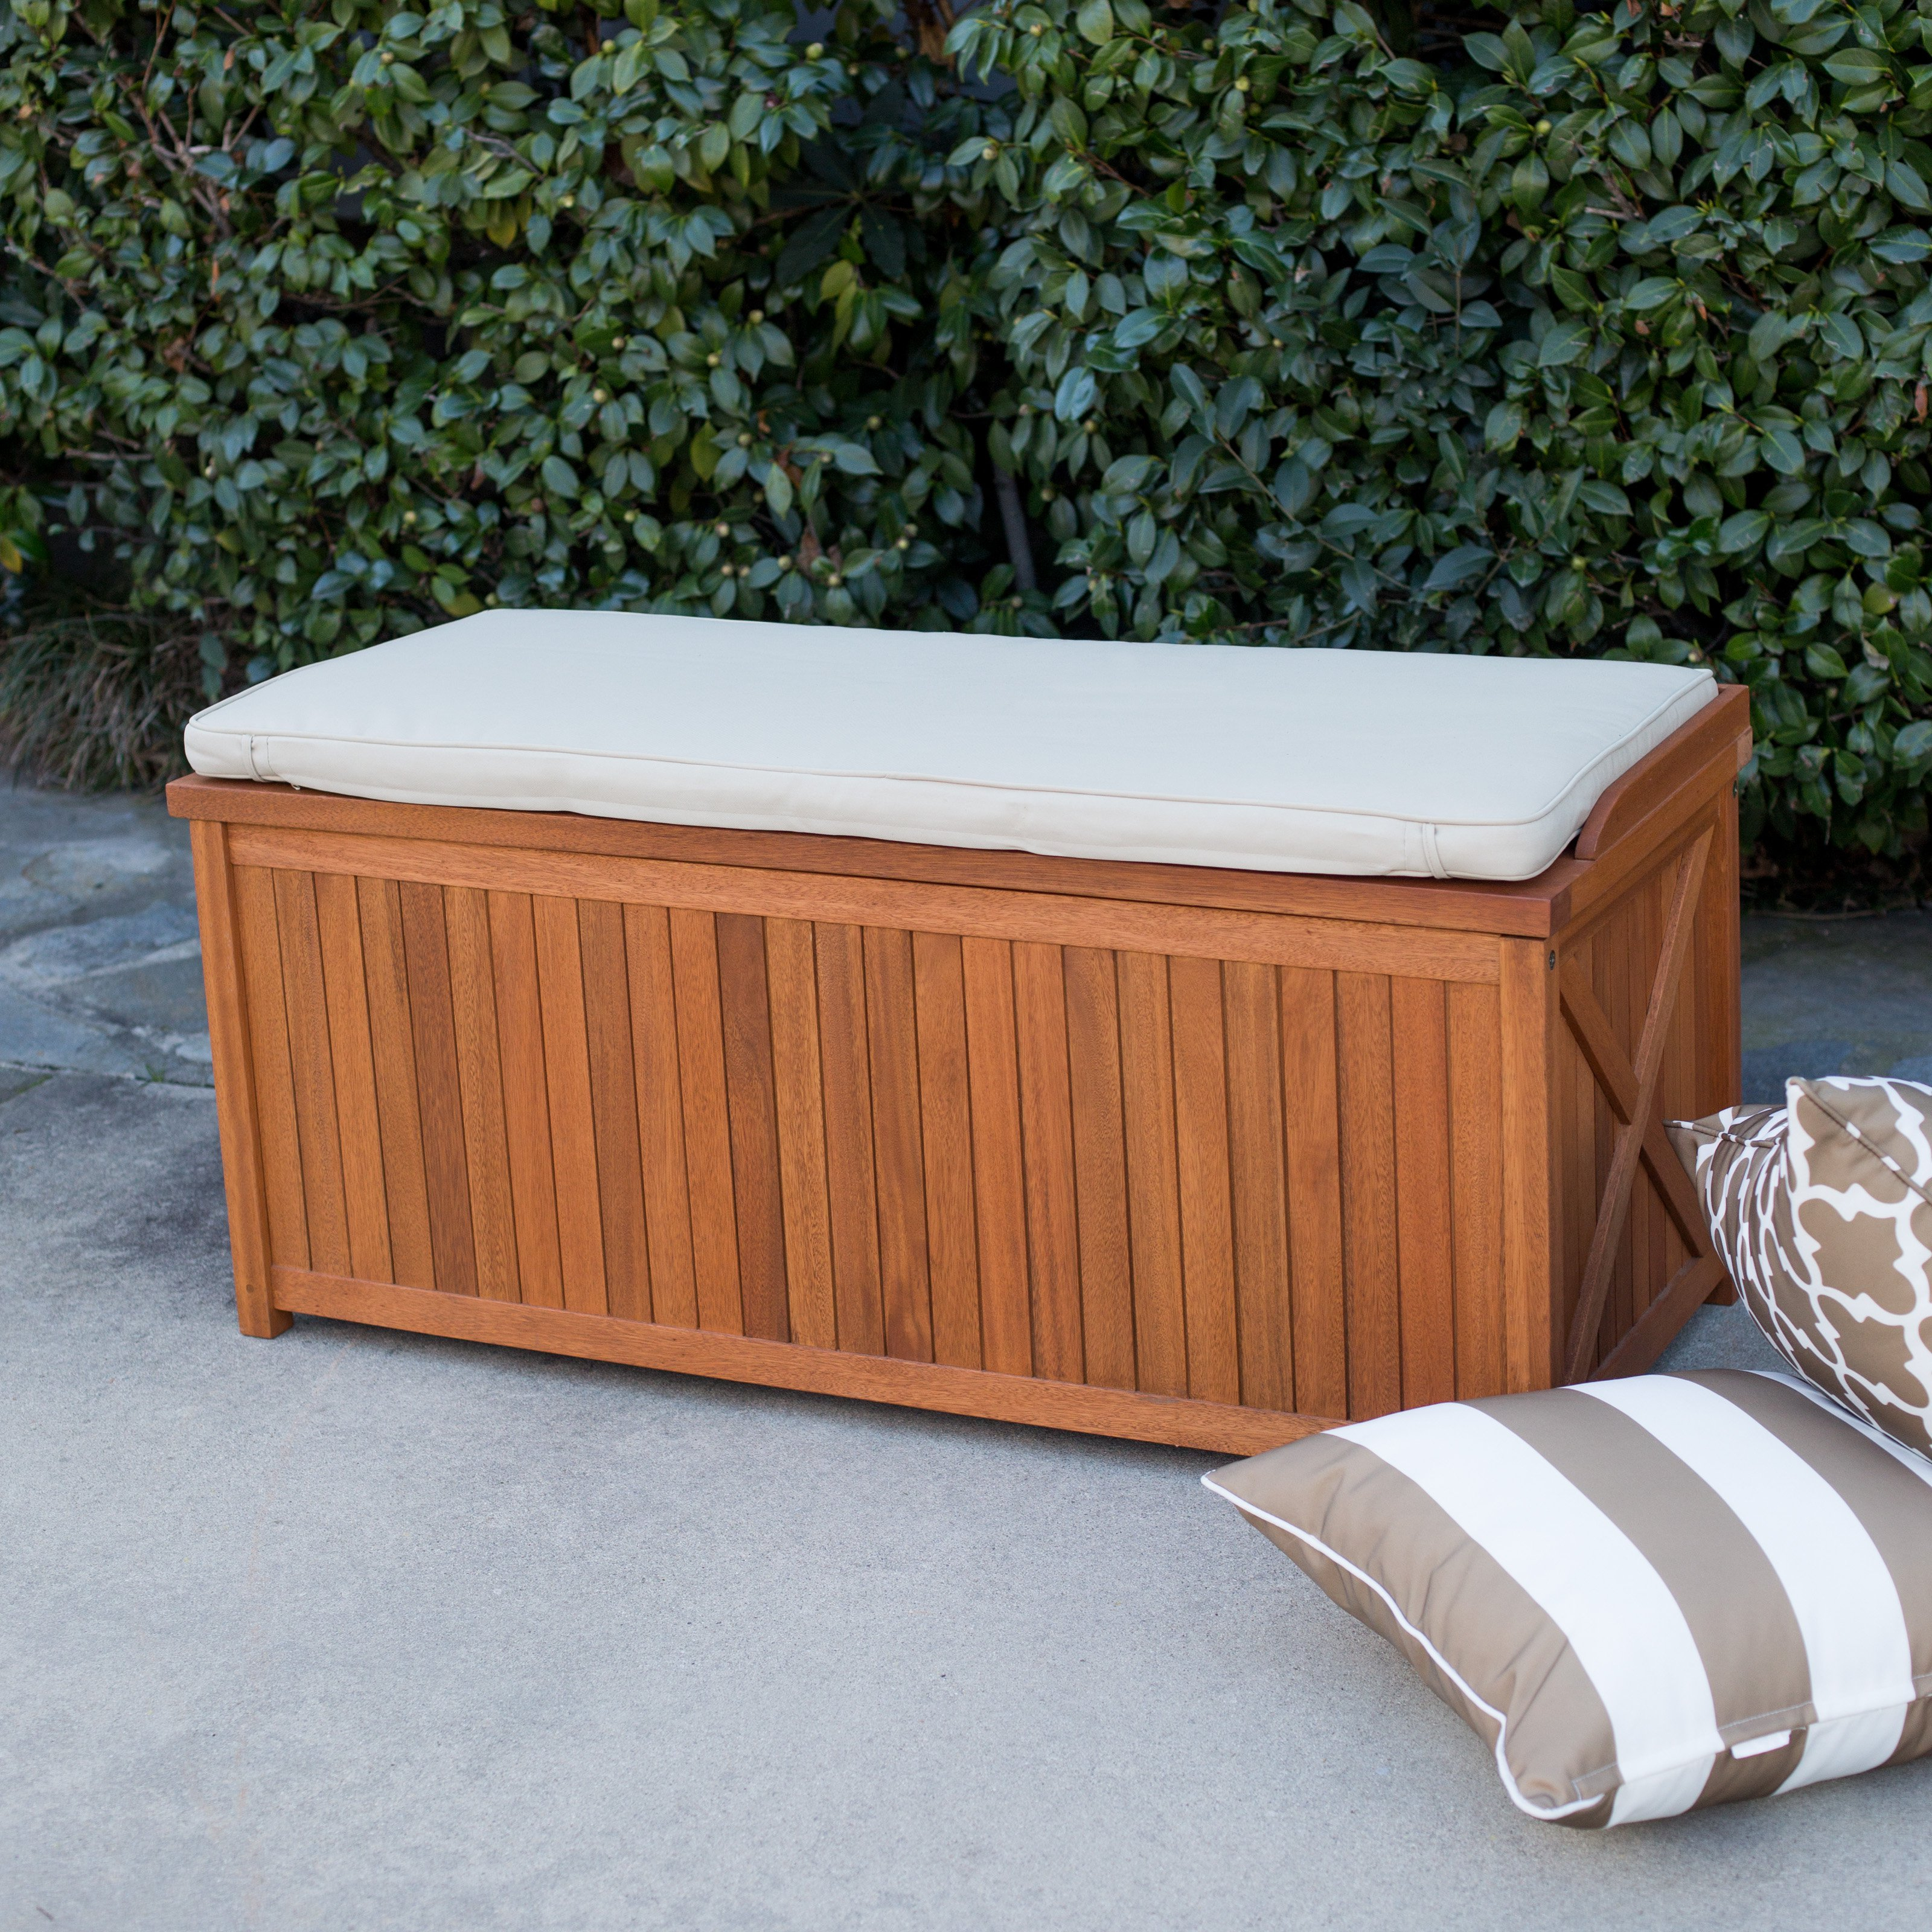 Waterproof Deck Box For Cushions Decks Ideas Pertaining To Size 3200 X